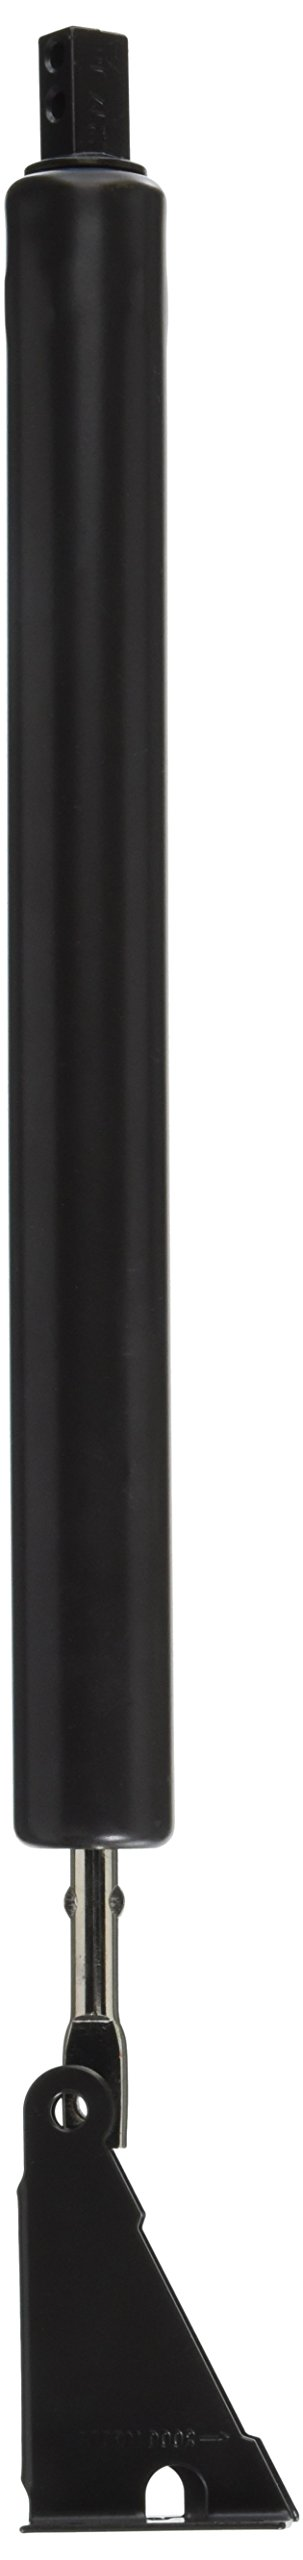 Wright Products VH440SB MEDIUM DUTY HYDRAULIC CLOSER, SEVILLE BRONZE